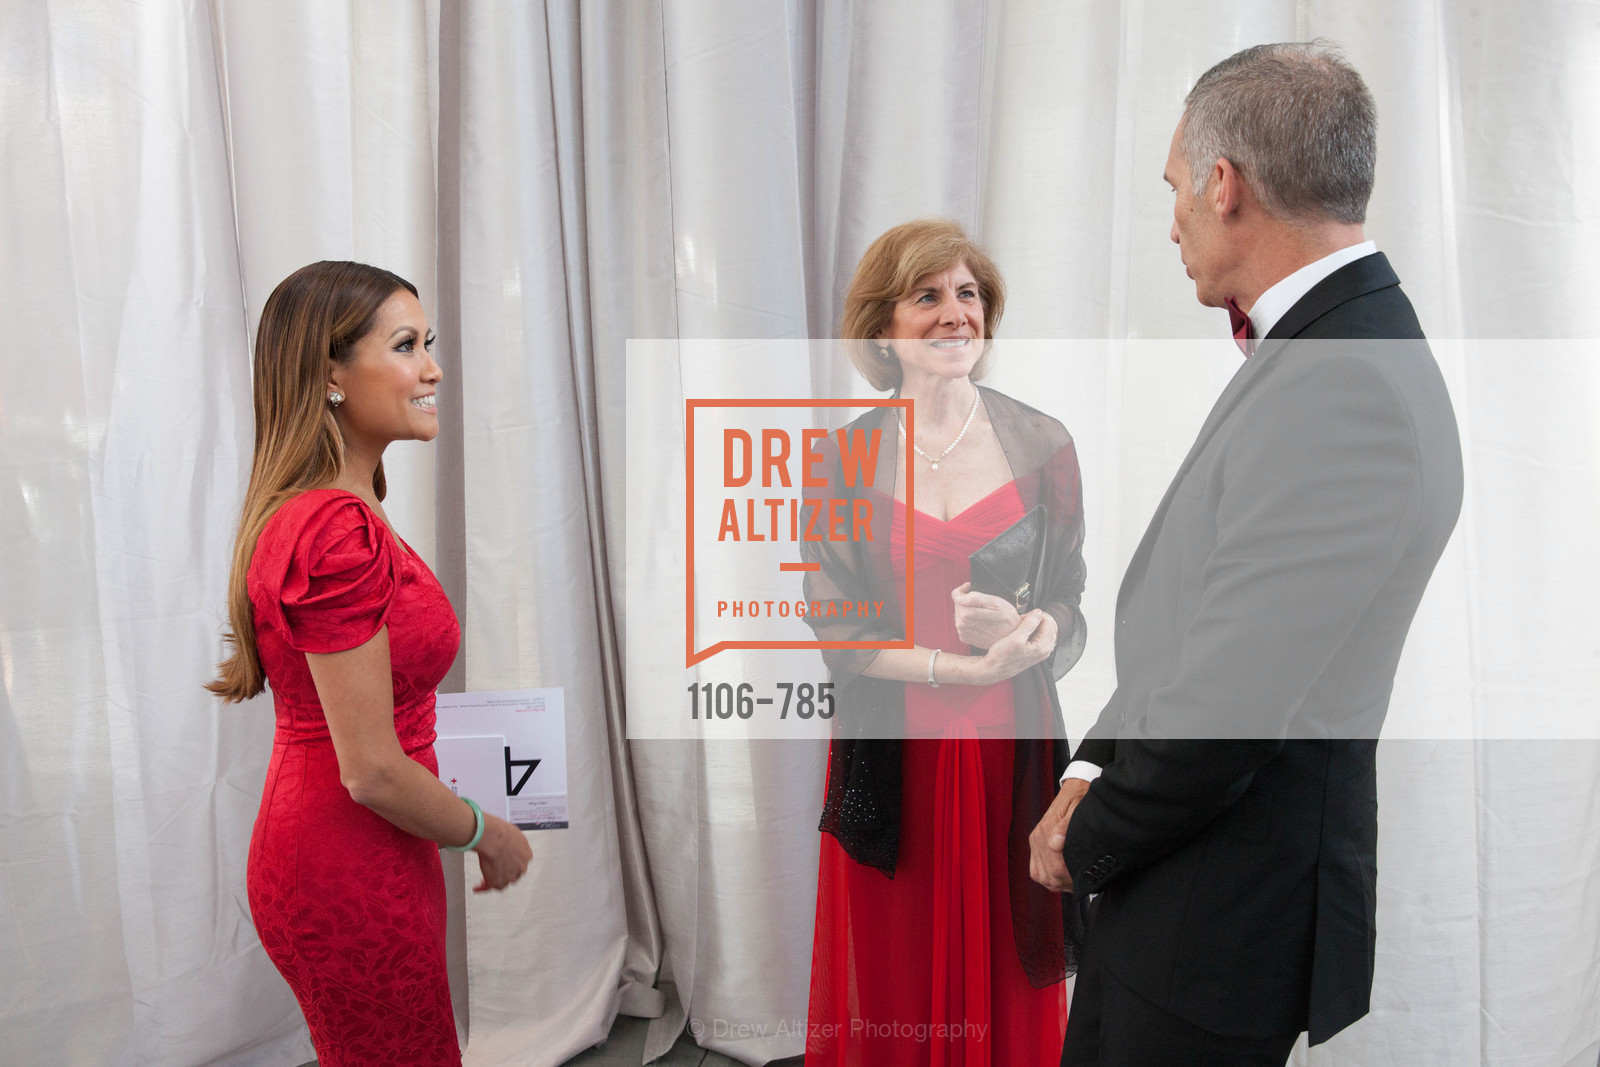 Lillian Phan, Gail McGovern, Mark Cloutier, 2015 RED CROSS Gala, US, April 12th, 2015,Drew Altizer, Drew Altizer Photography, full-service agency, private events, San Francisco photographer, photographer california